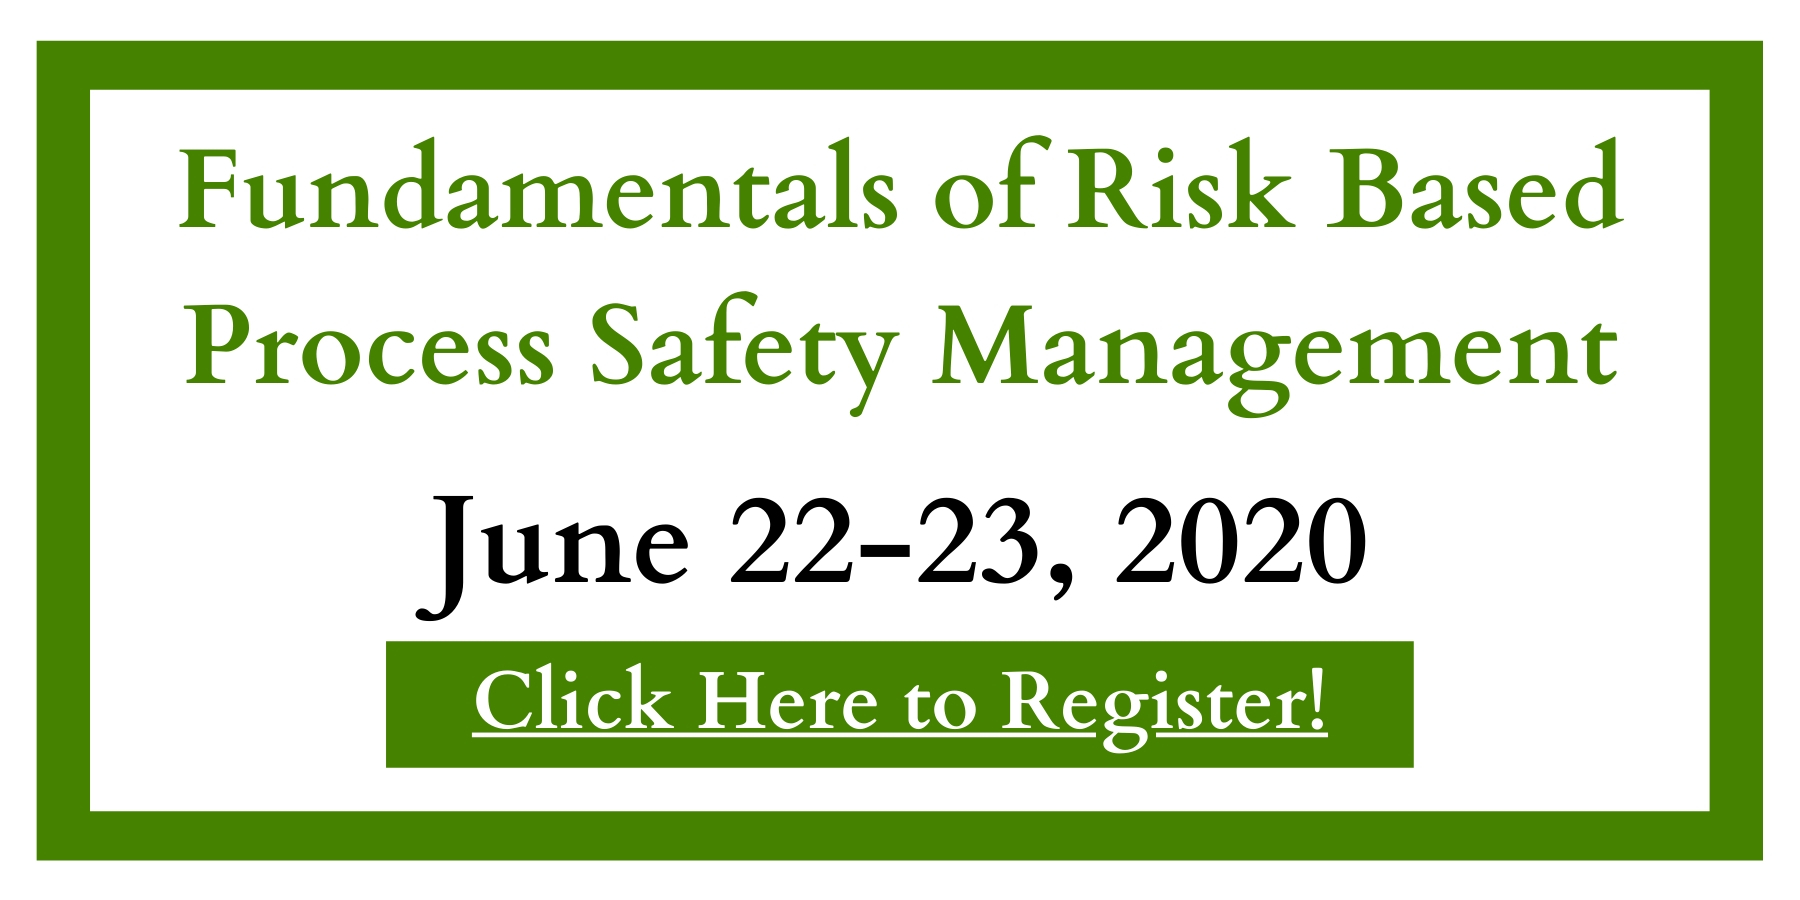 Register for Fundamentals of Risk Based Process Safety Management